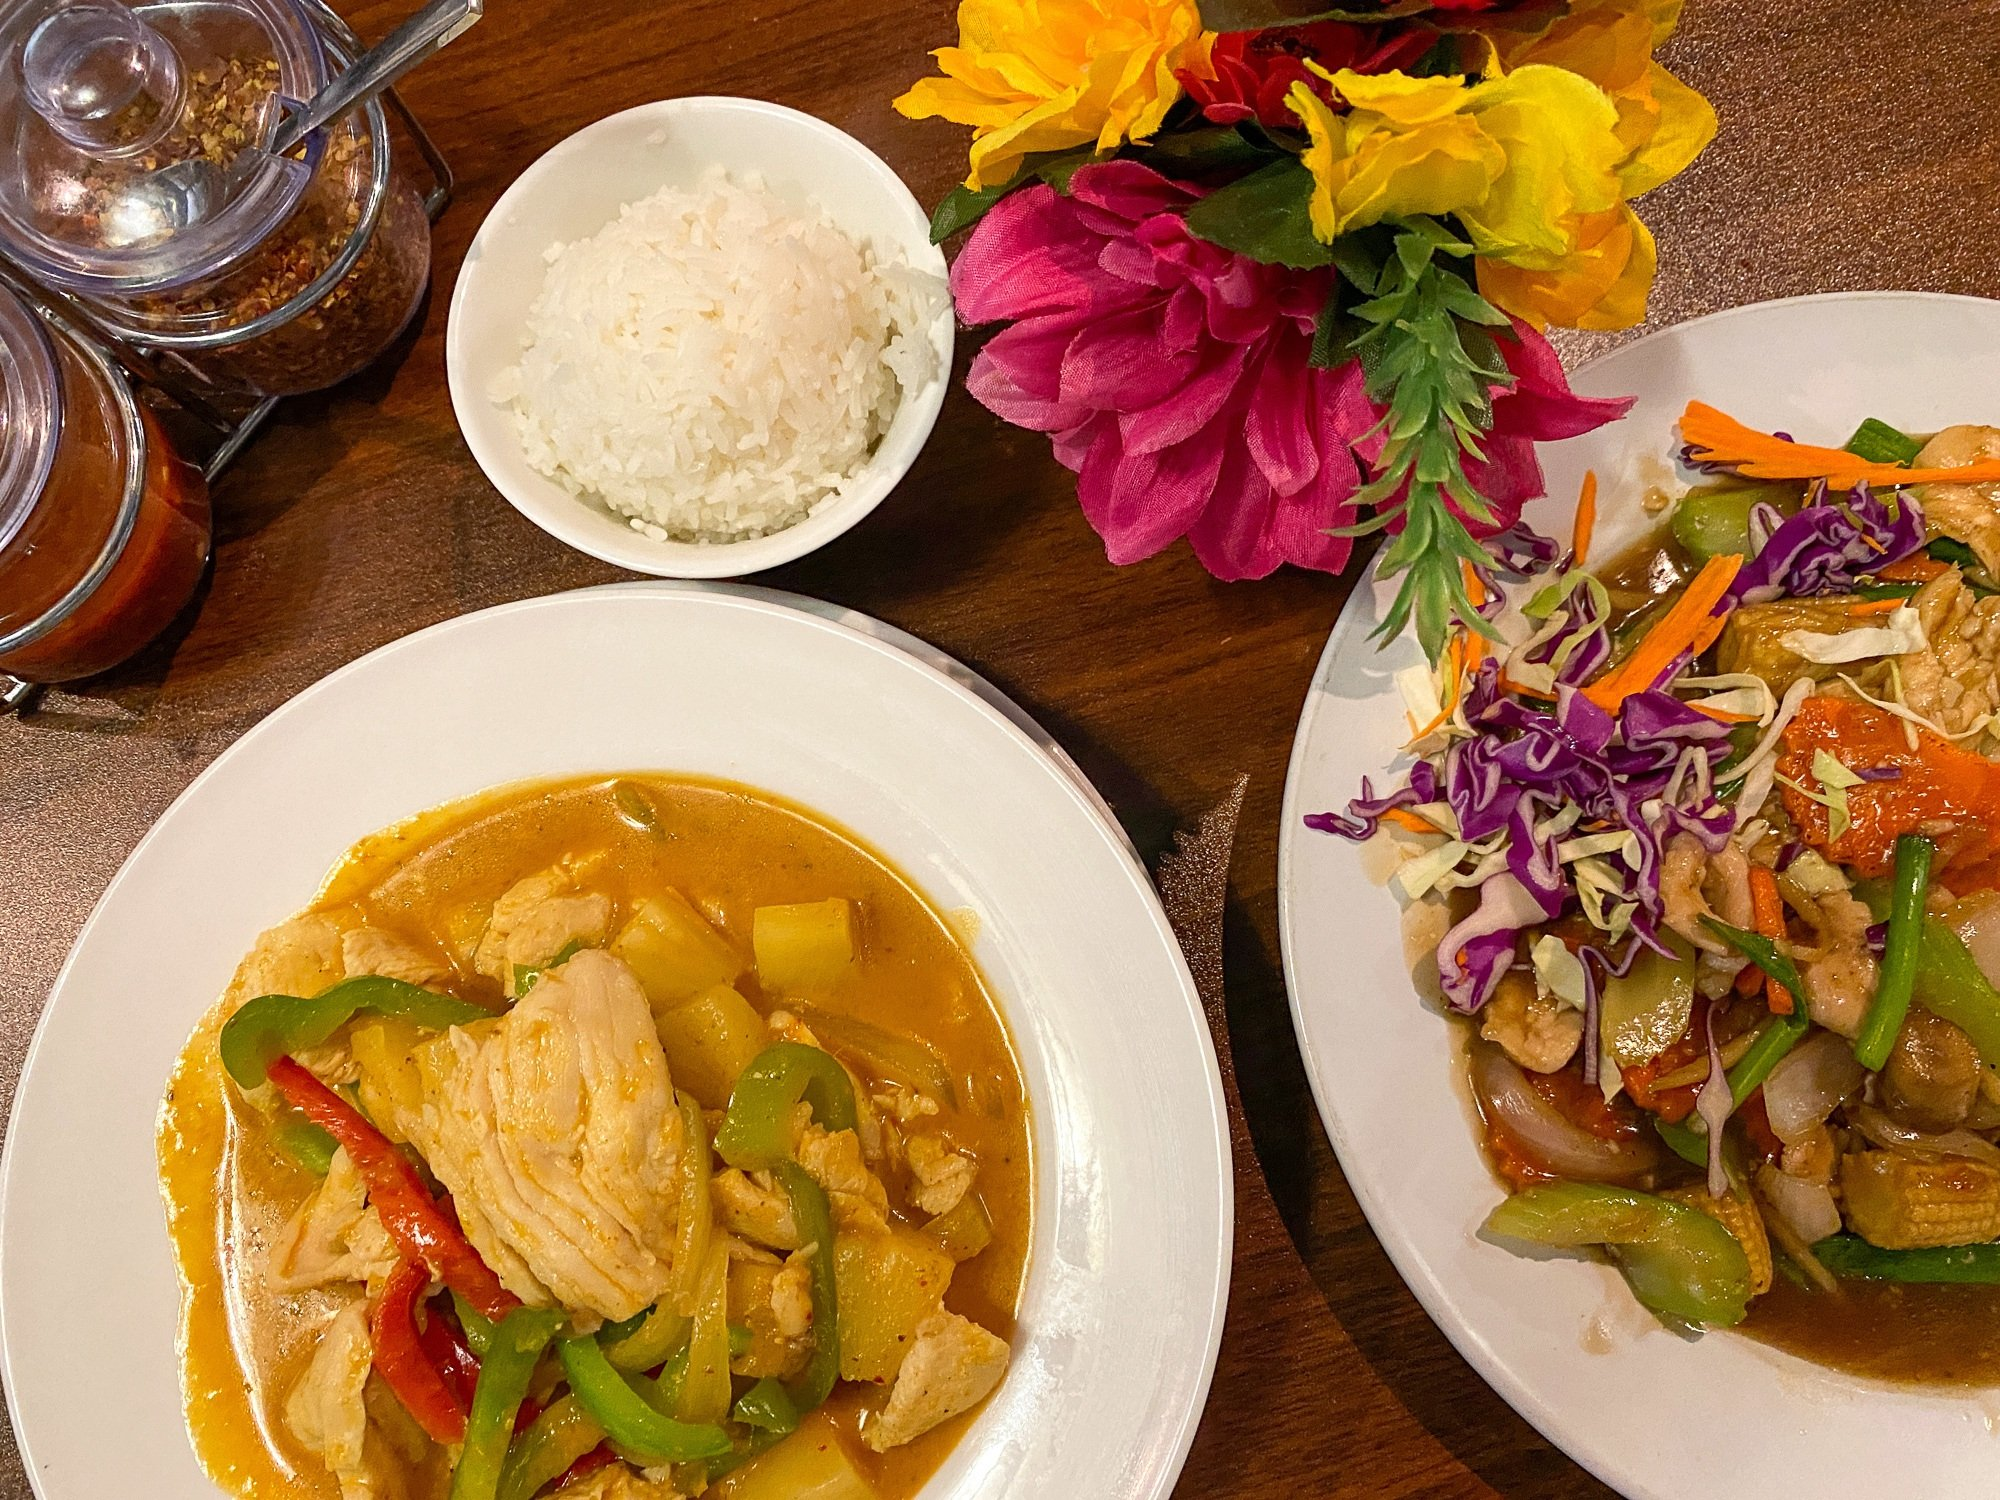 Extremely good Thai food at Banana Blossom in St. George